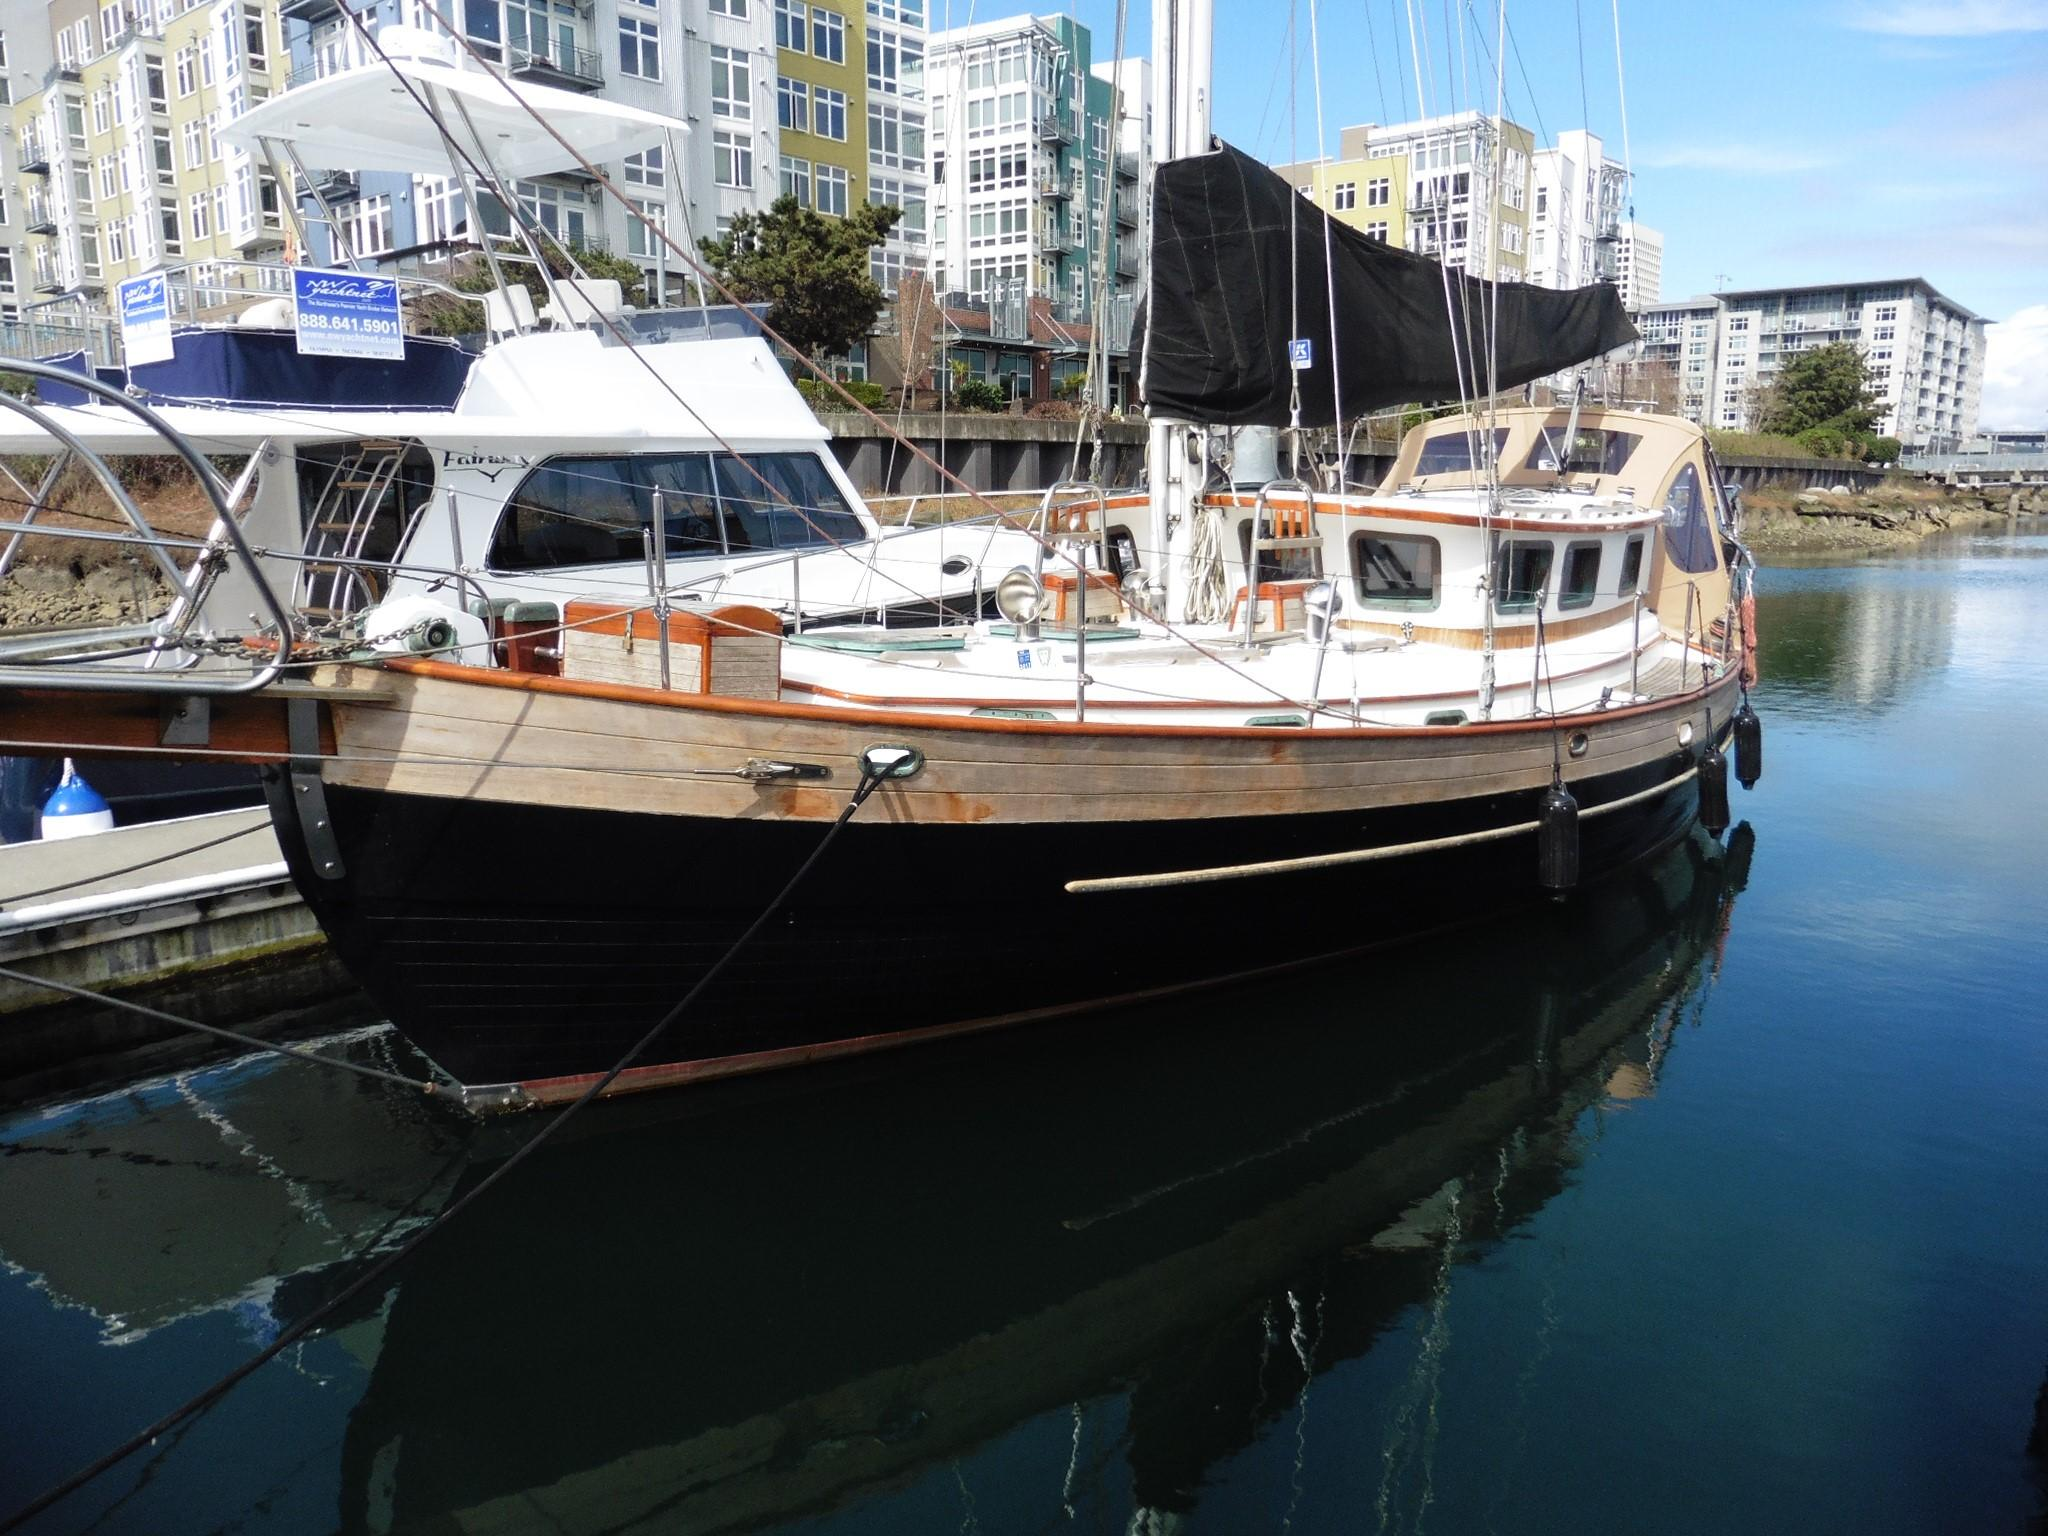 6194429_20170405075256907_1_XLARGE&w=924&h=693&t=1491425870000 1983 hans christian pilot house sail boat for sale www Simple Boat Wiring Diagram at n-0.co